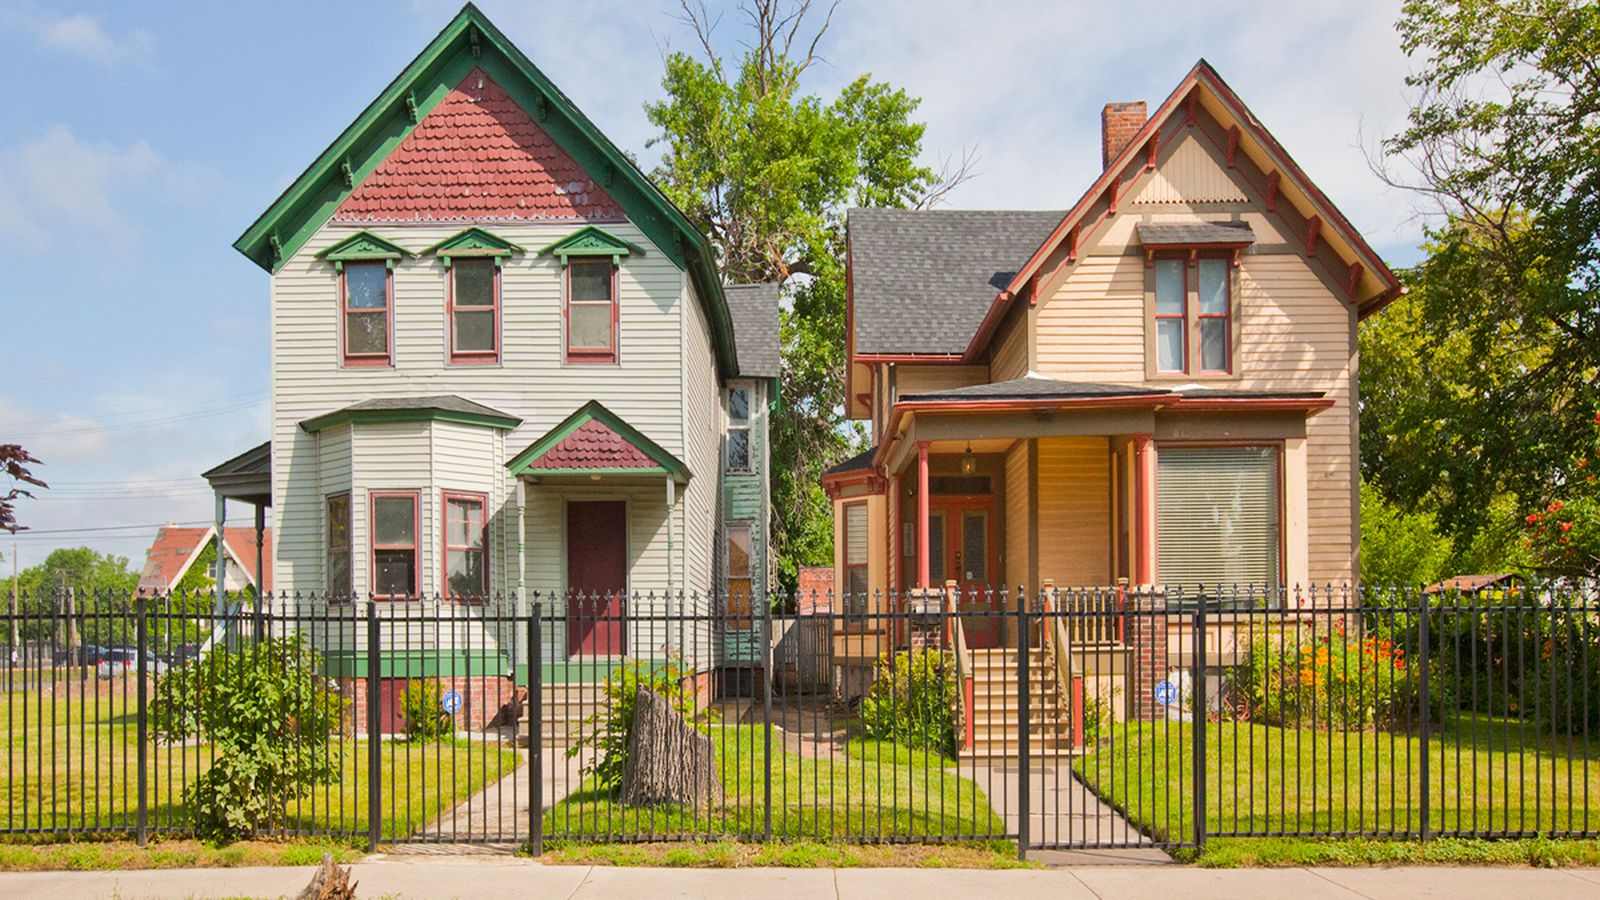 2 hubbard farms fixer uppers list for 335k curbed detroit. Black Bedroom Furniture Sets. Home Design Ideas